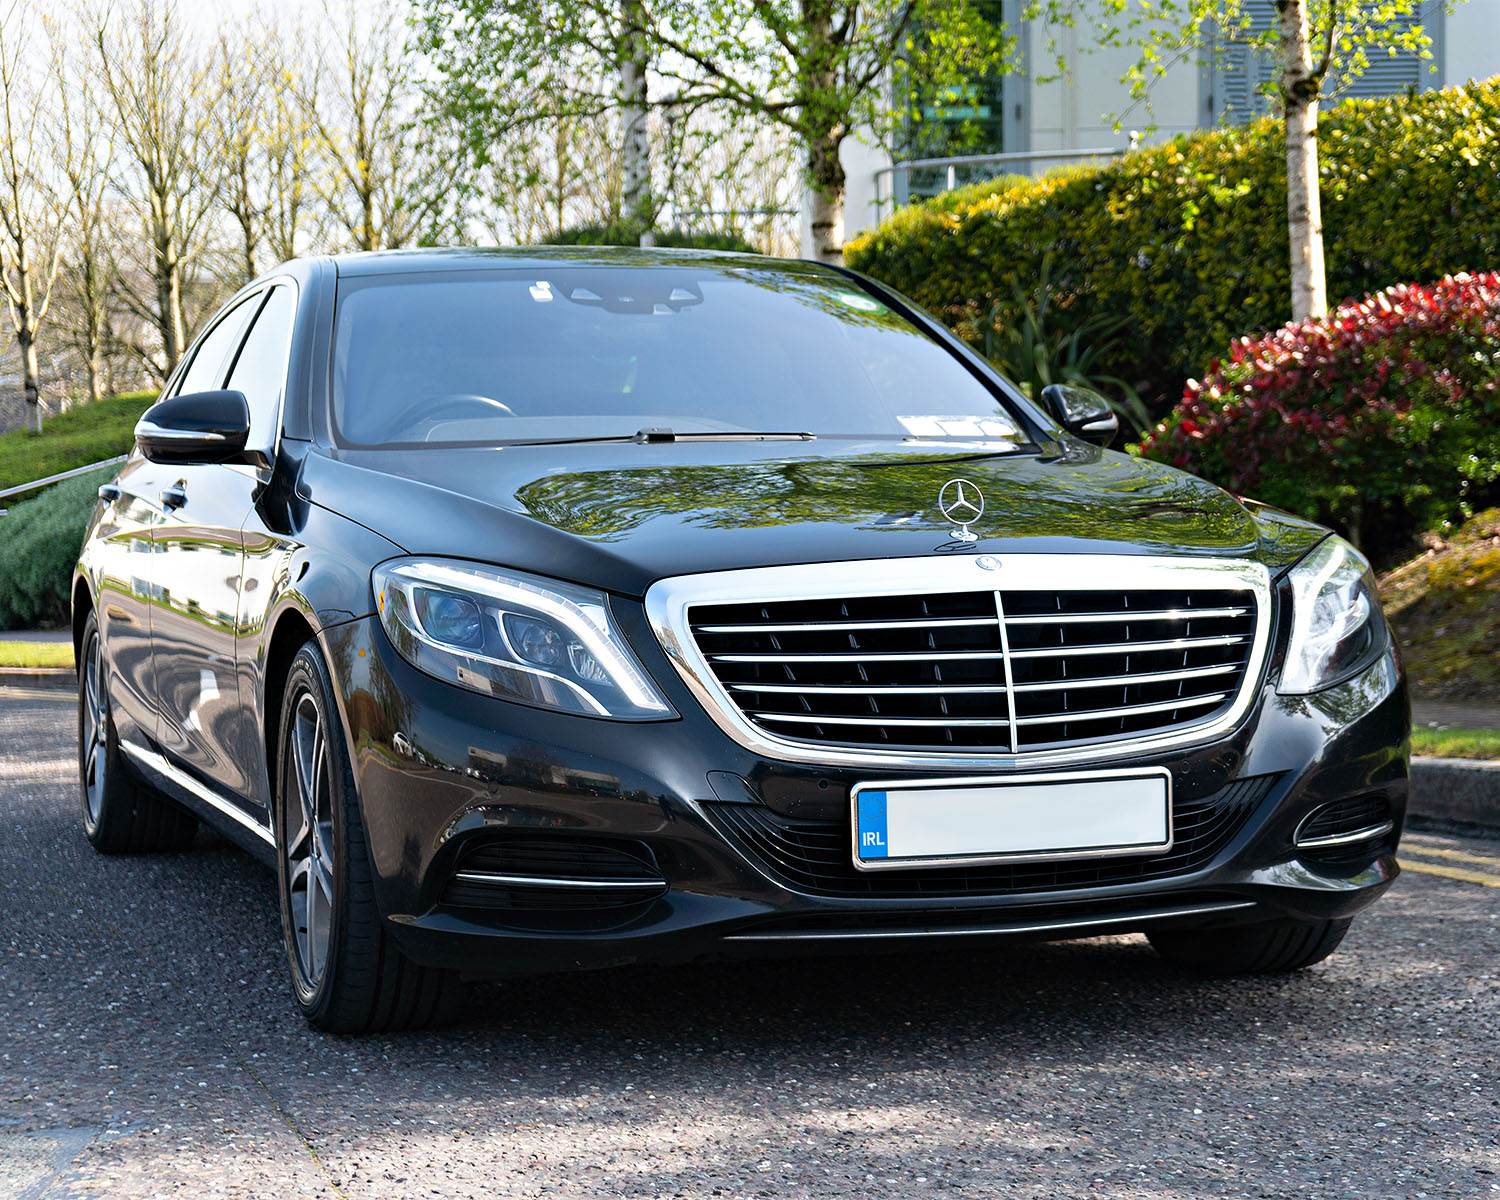 Private Chauffeuring Services - Be driven in your own car or in one from our first-class fleet.We operate a fleet of executive saloons/sedans, MPVs and coaches. All impeccably maintained to provide you with a comfortable and effortless transfer.We can also provide a private chauffeur to drive you in your own vehicle.